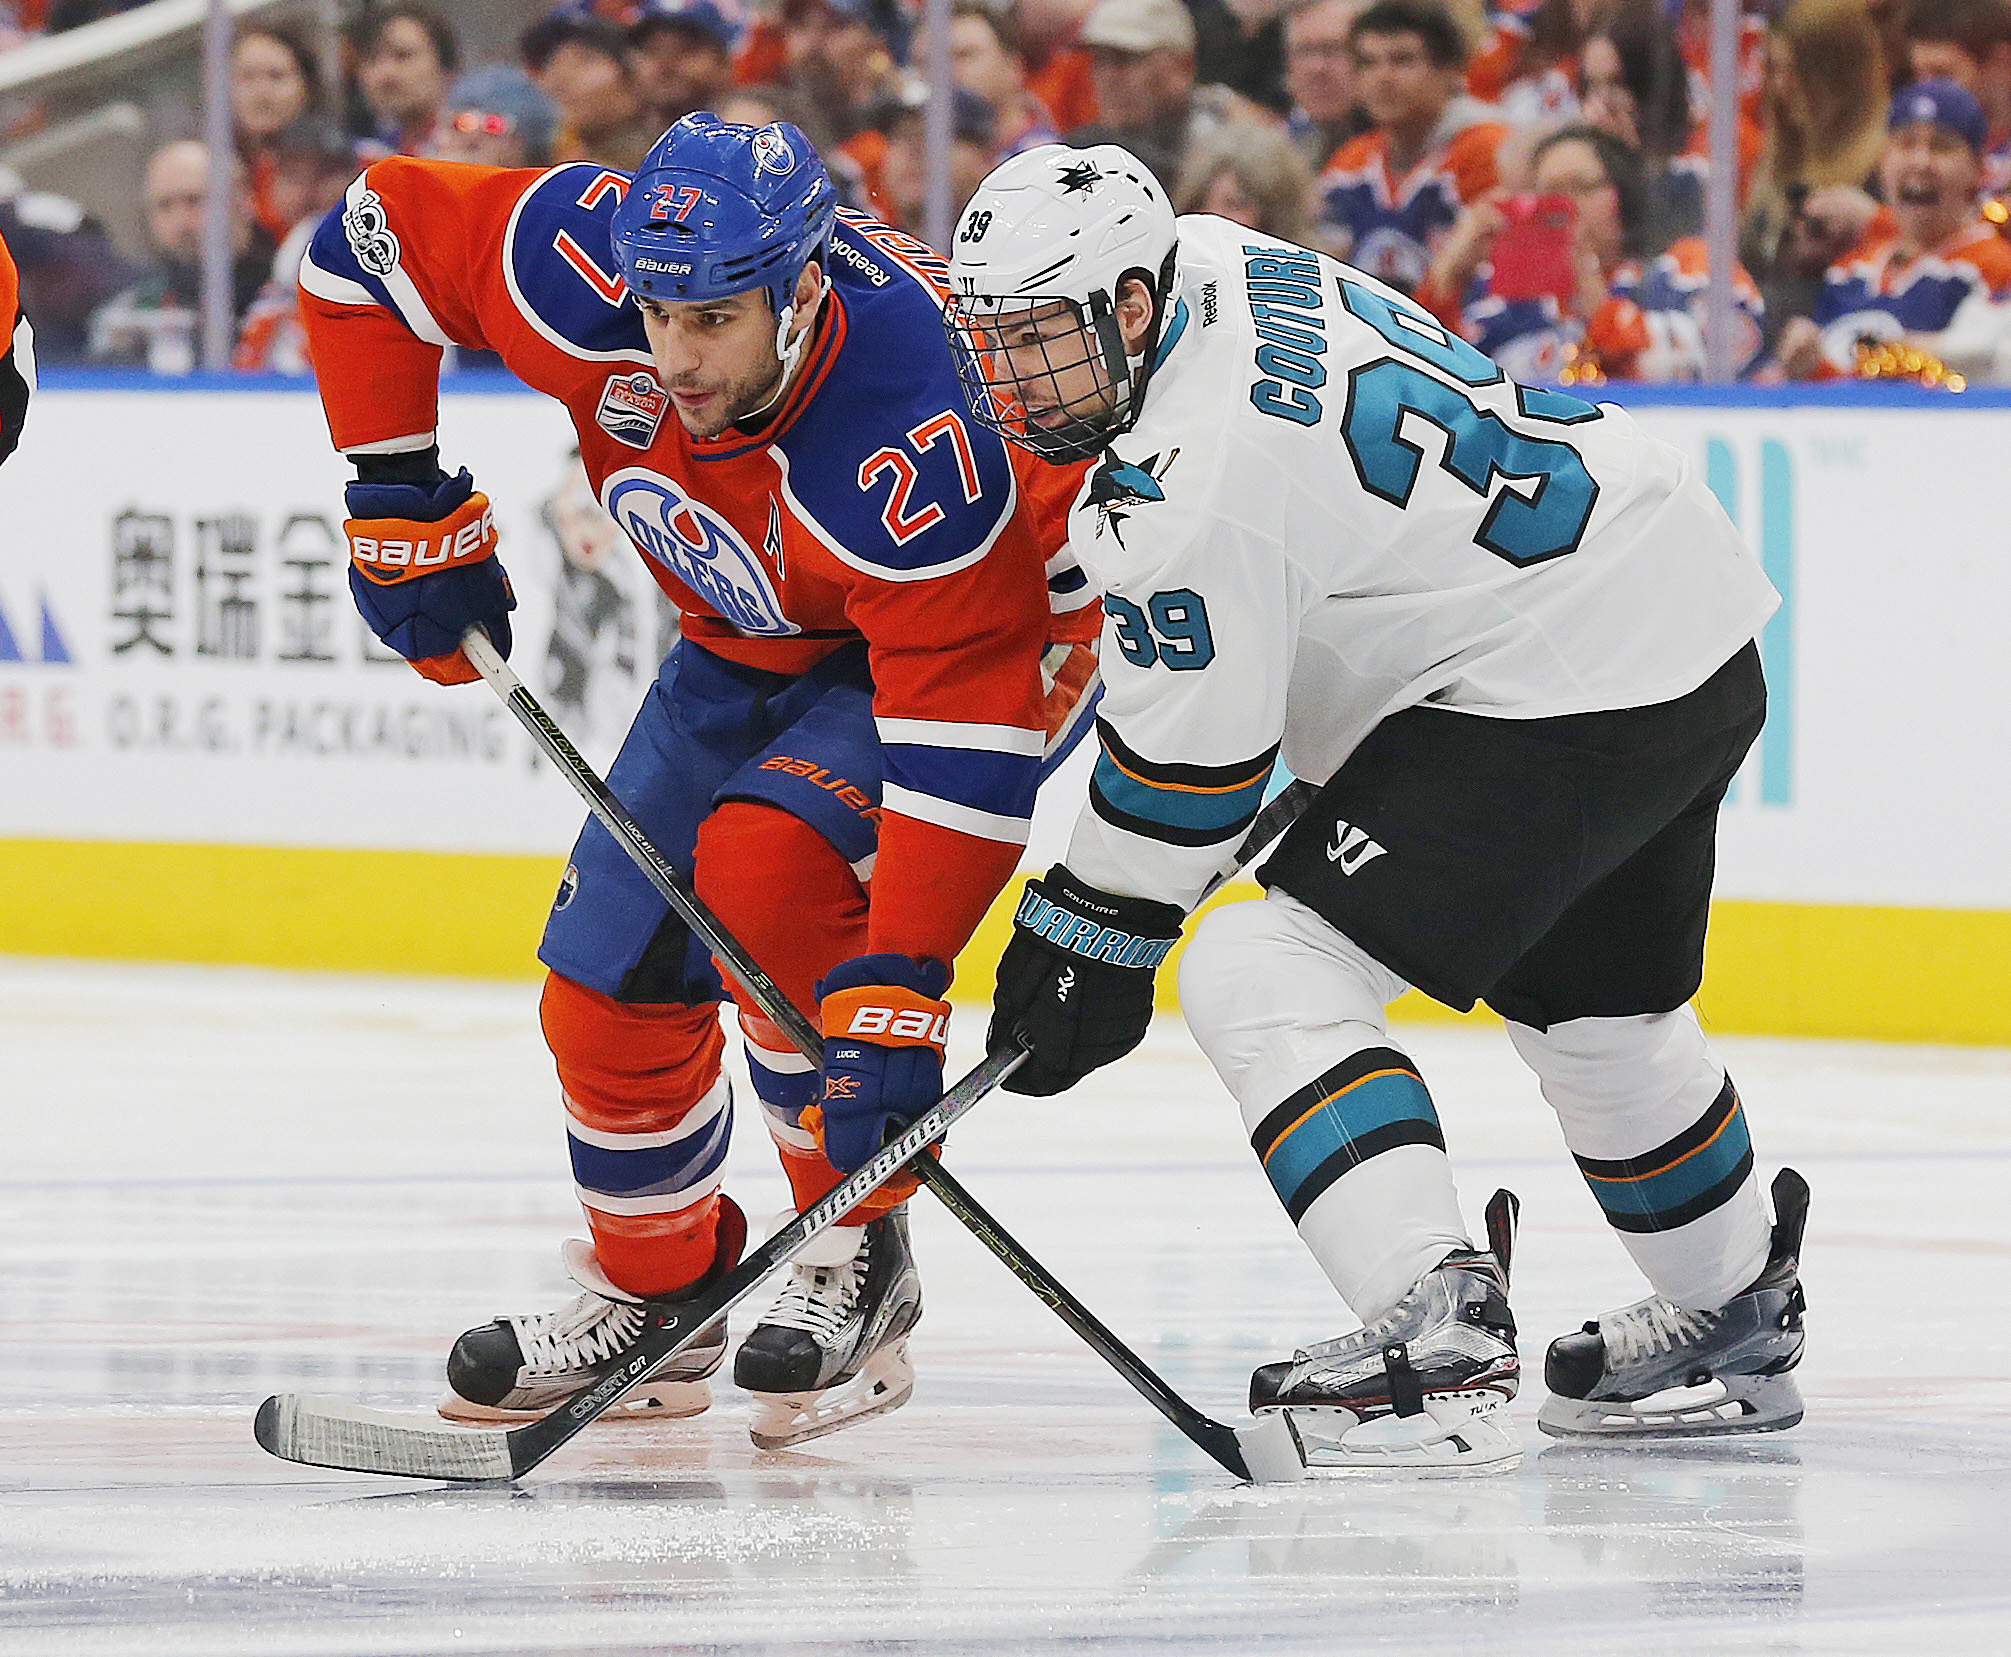 10011772-nhl-stanley-cup-playoffs-san-jose-sharks-at-edmonton-oilers